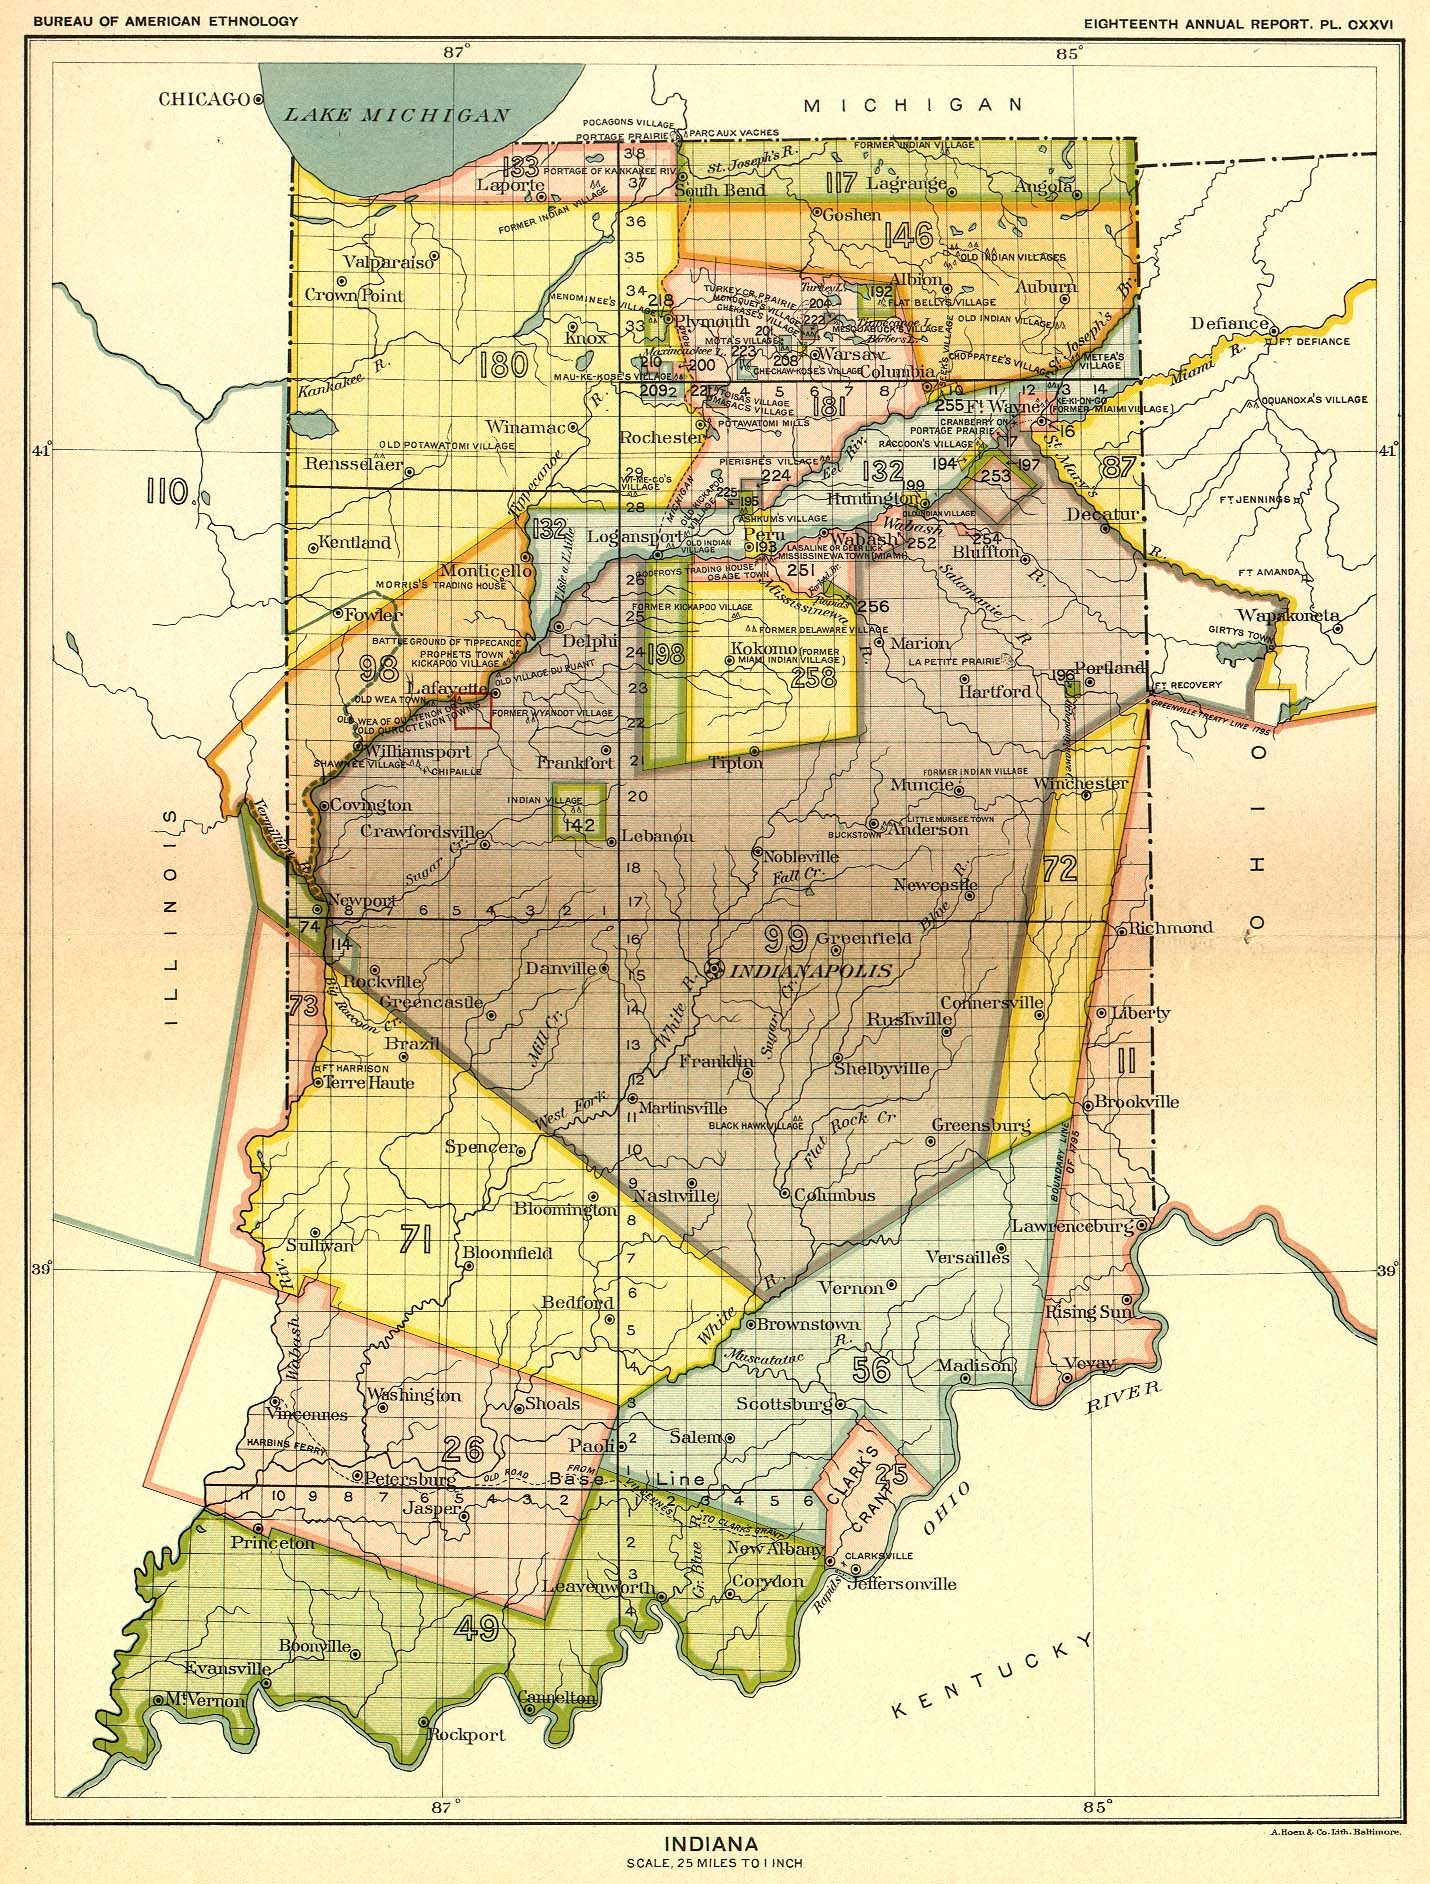 Indian Land Cessions In The U S Indiana Map United States - Indiana on a us map